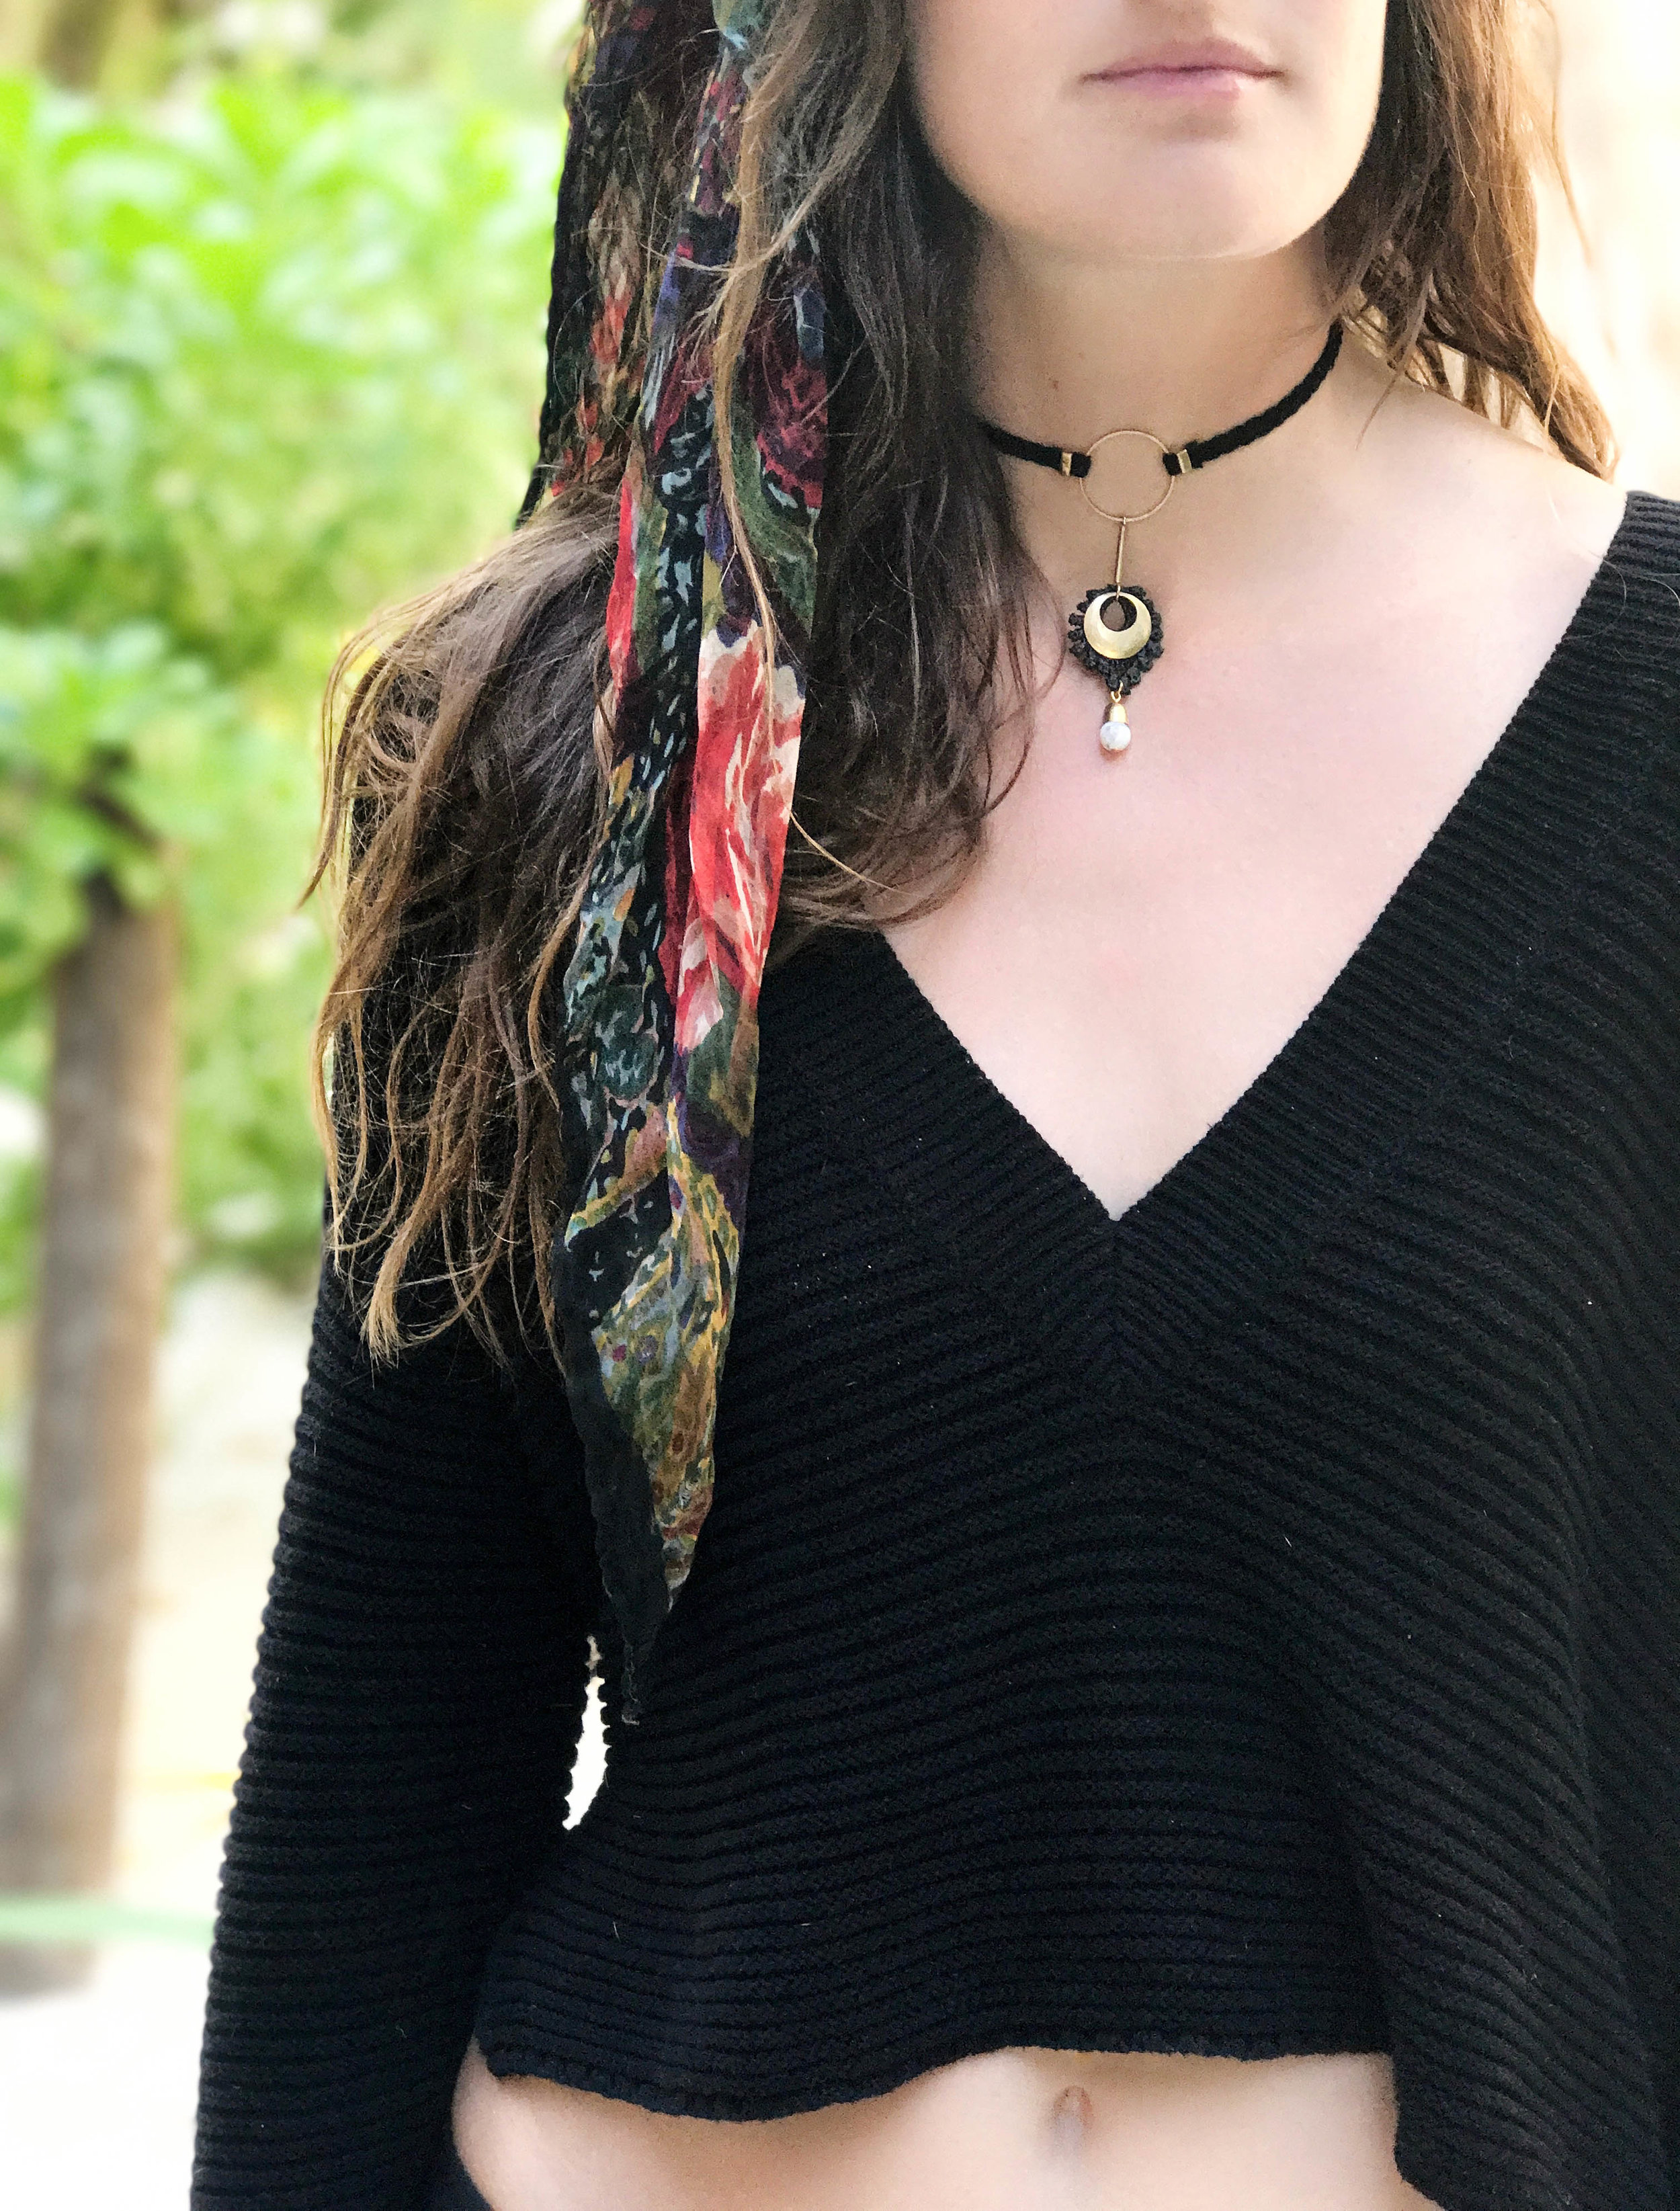 Artillery necklace choker (click here for details)